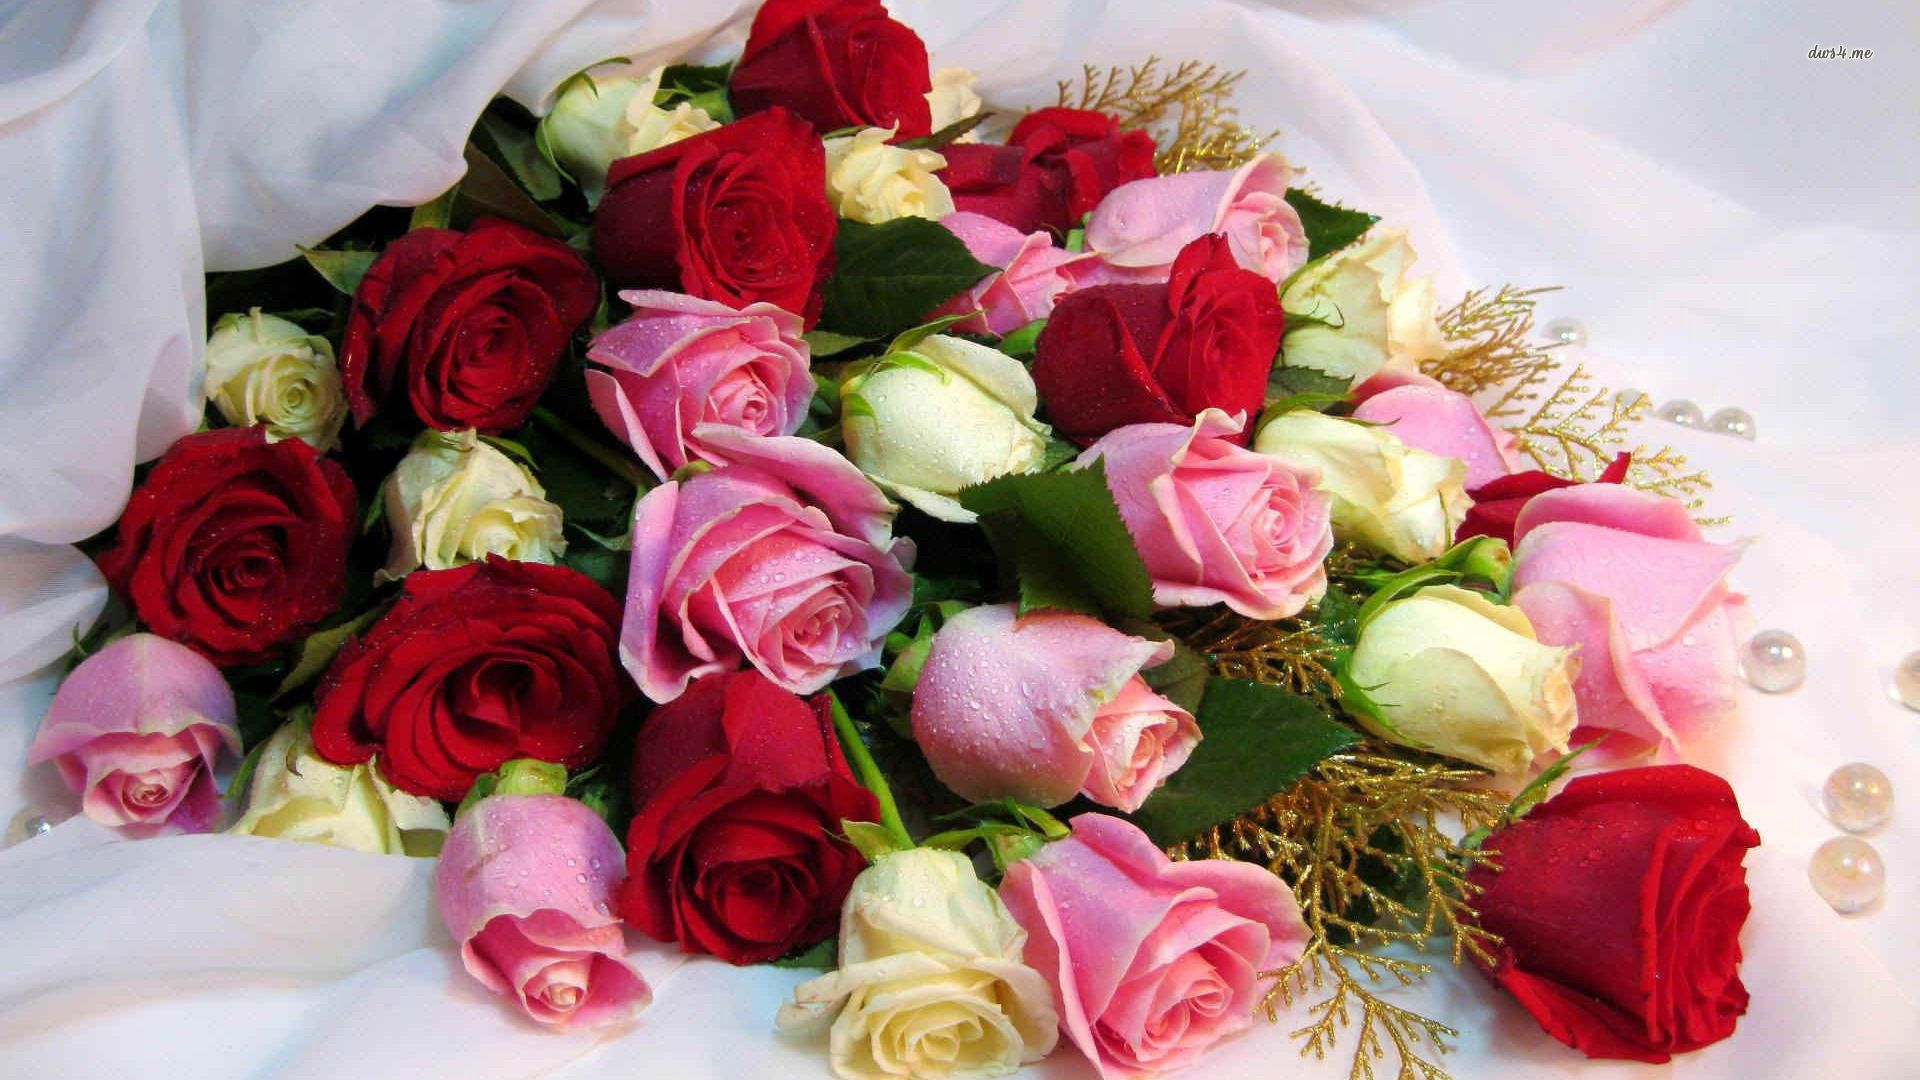 HD Image Woman Spring Flowers Bouquet Of Roses Wallpaper